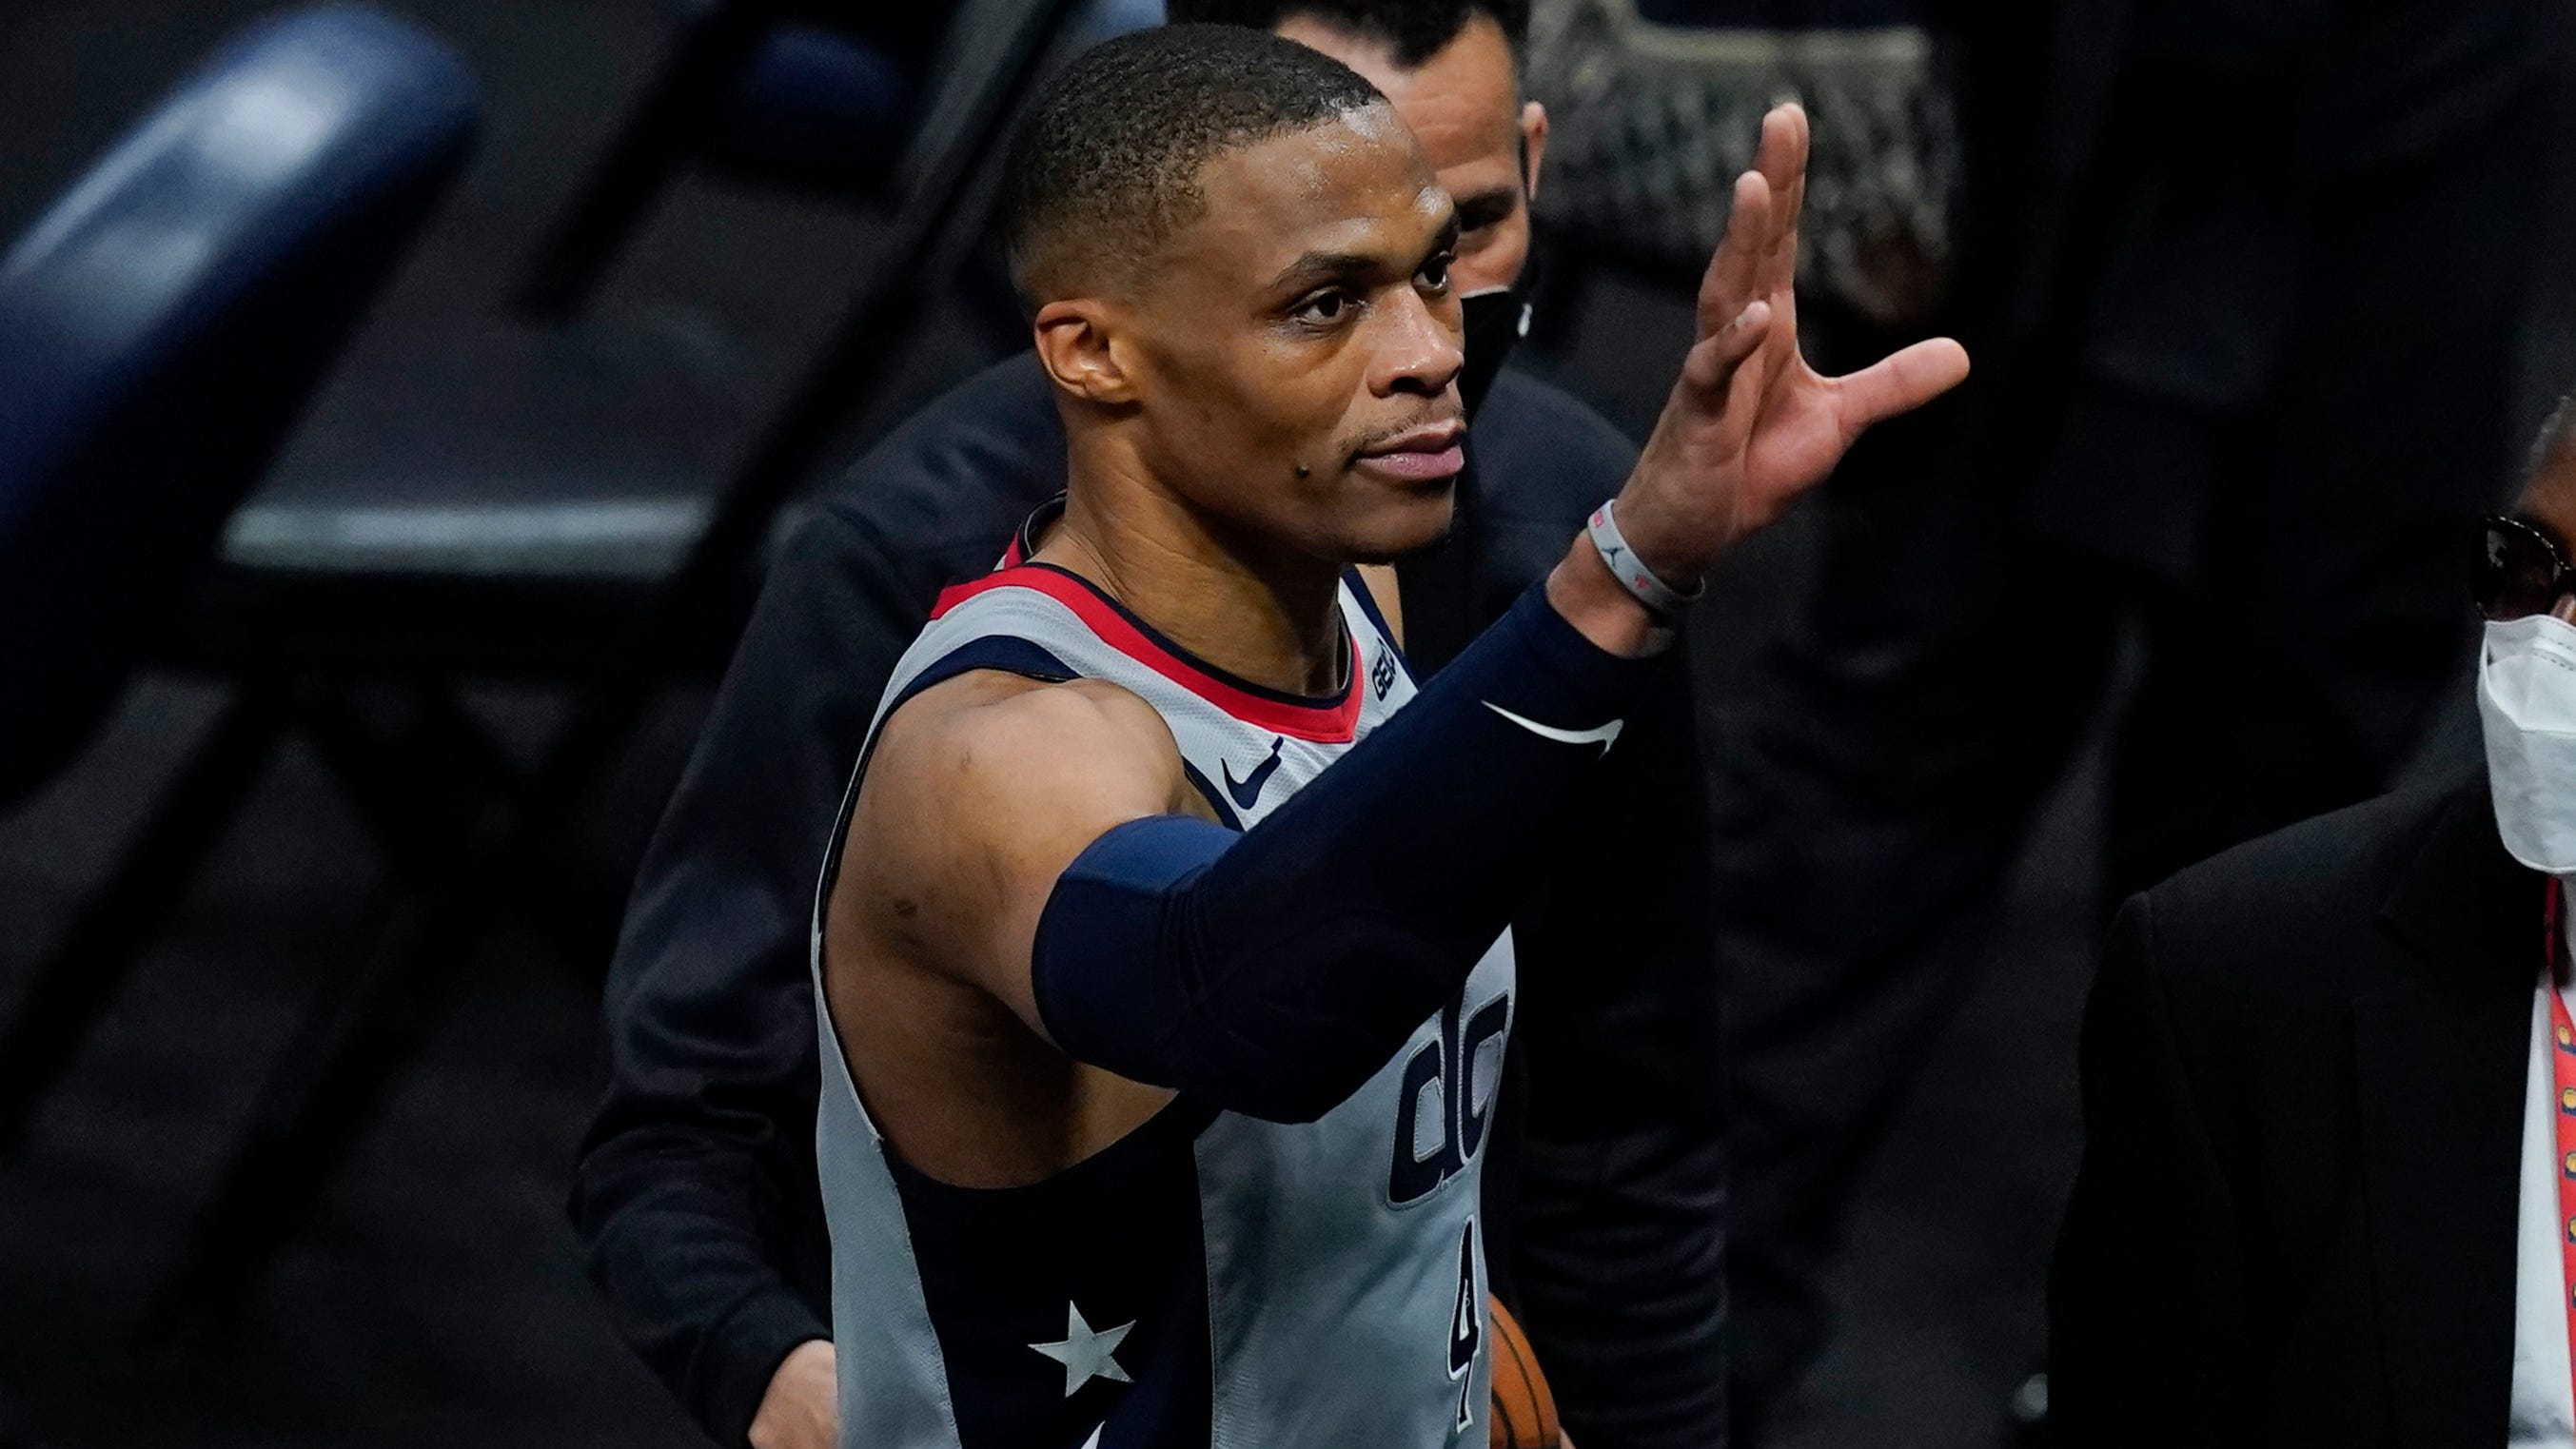 Russell Westbrook ties Oscar Robertson's NBA record with 181st career triple-double